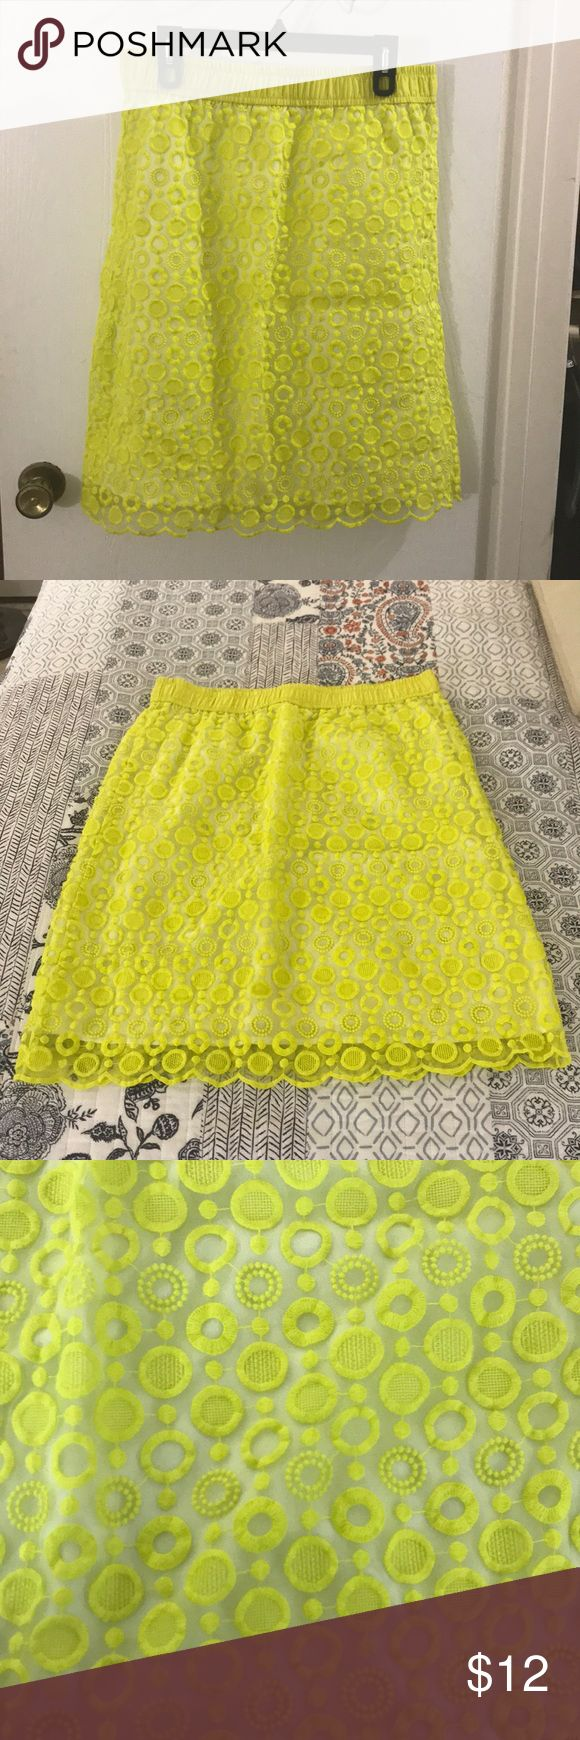 Bright Neon yellow skirt Lovely neon yellow skirt, white lining circle detail, has a n elastic band along the waist, so does have stretch 25 inches long Waist 17 inches Liz Claiborne Skirts